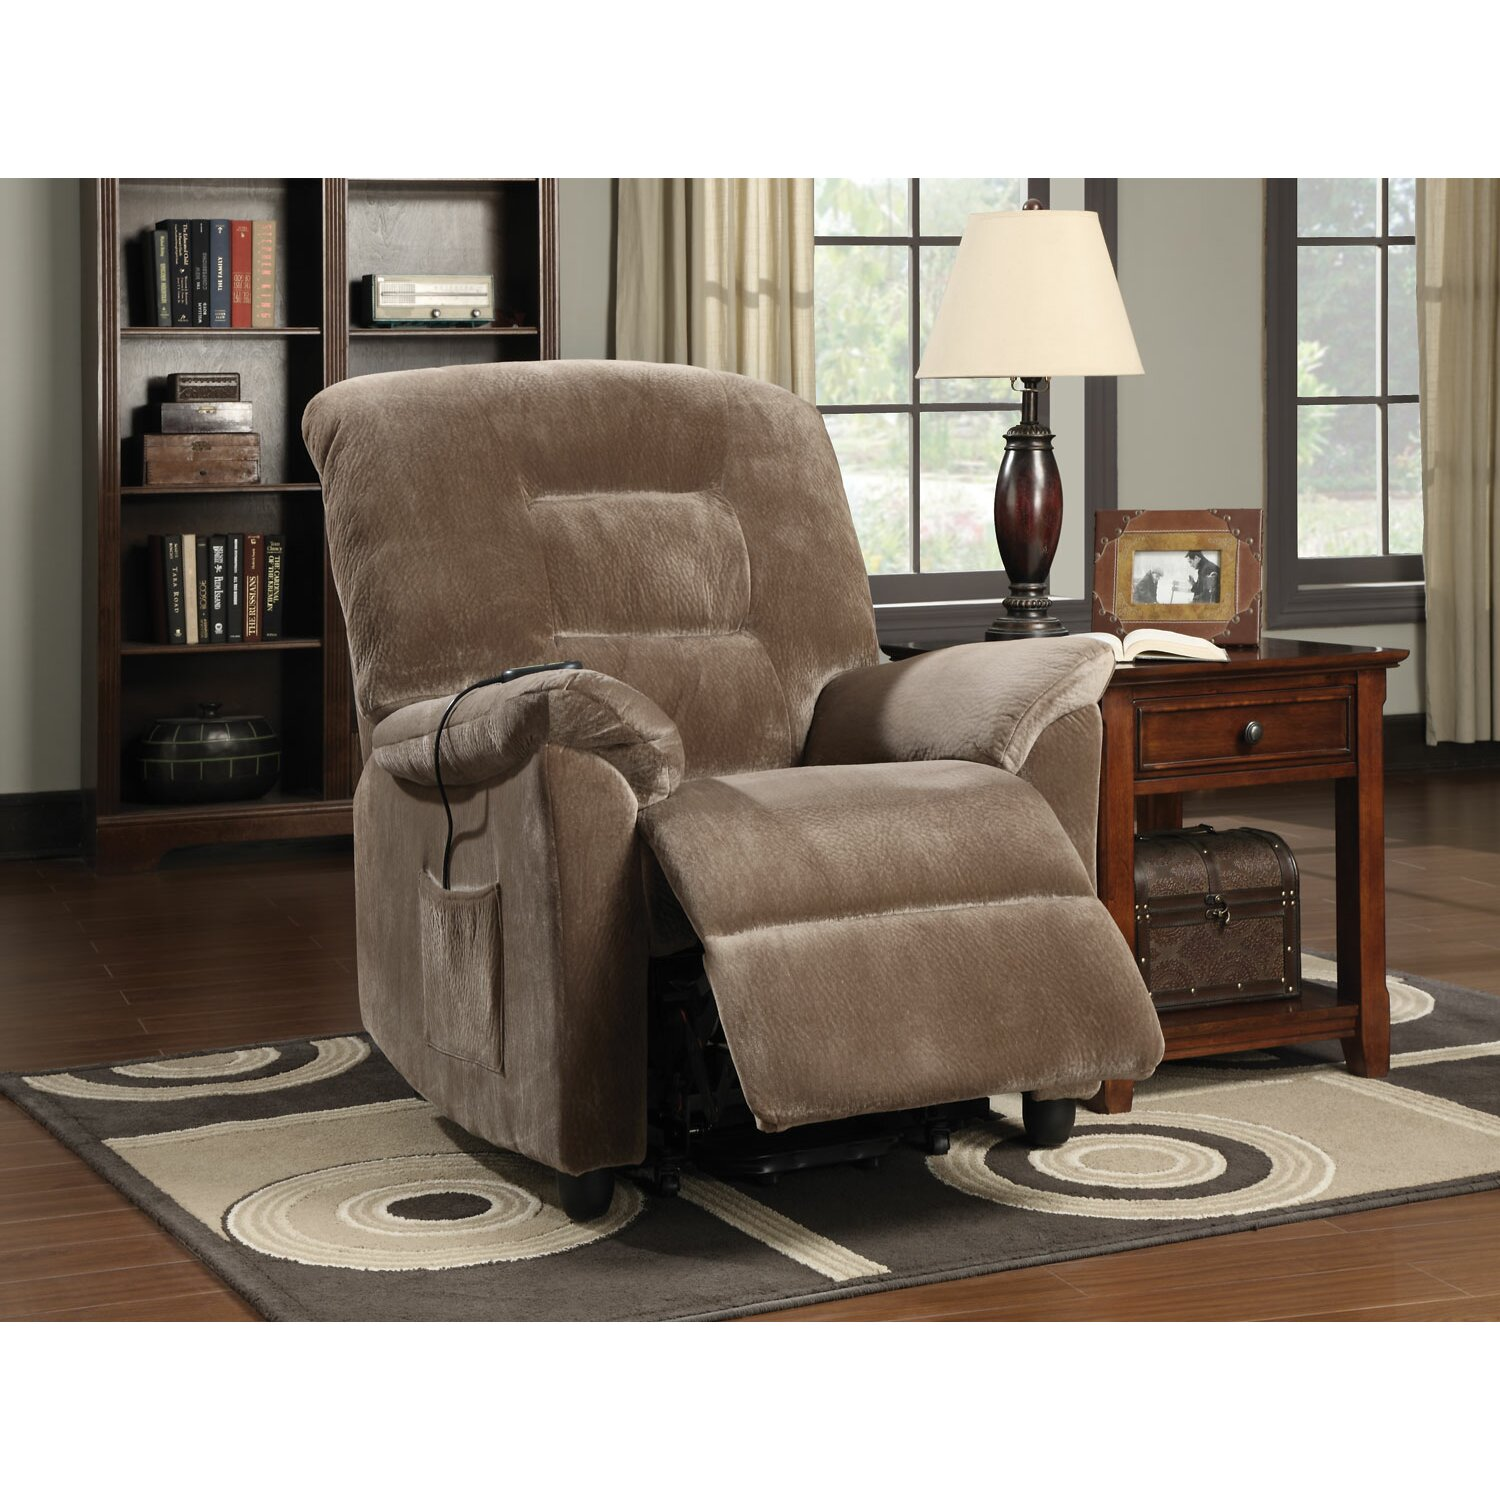 Wildon home power lift recliner reviews wayfair supply for Electric recliners reviews